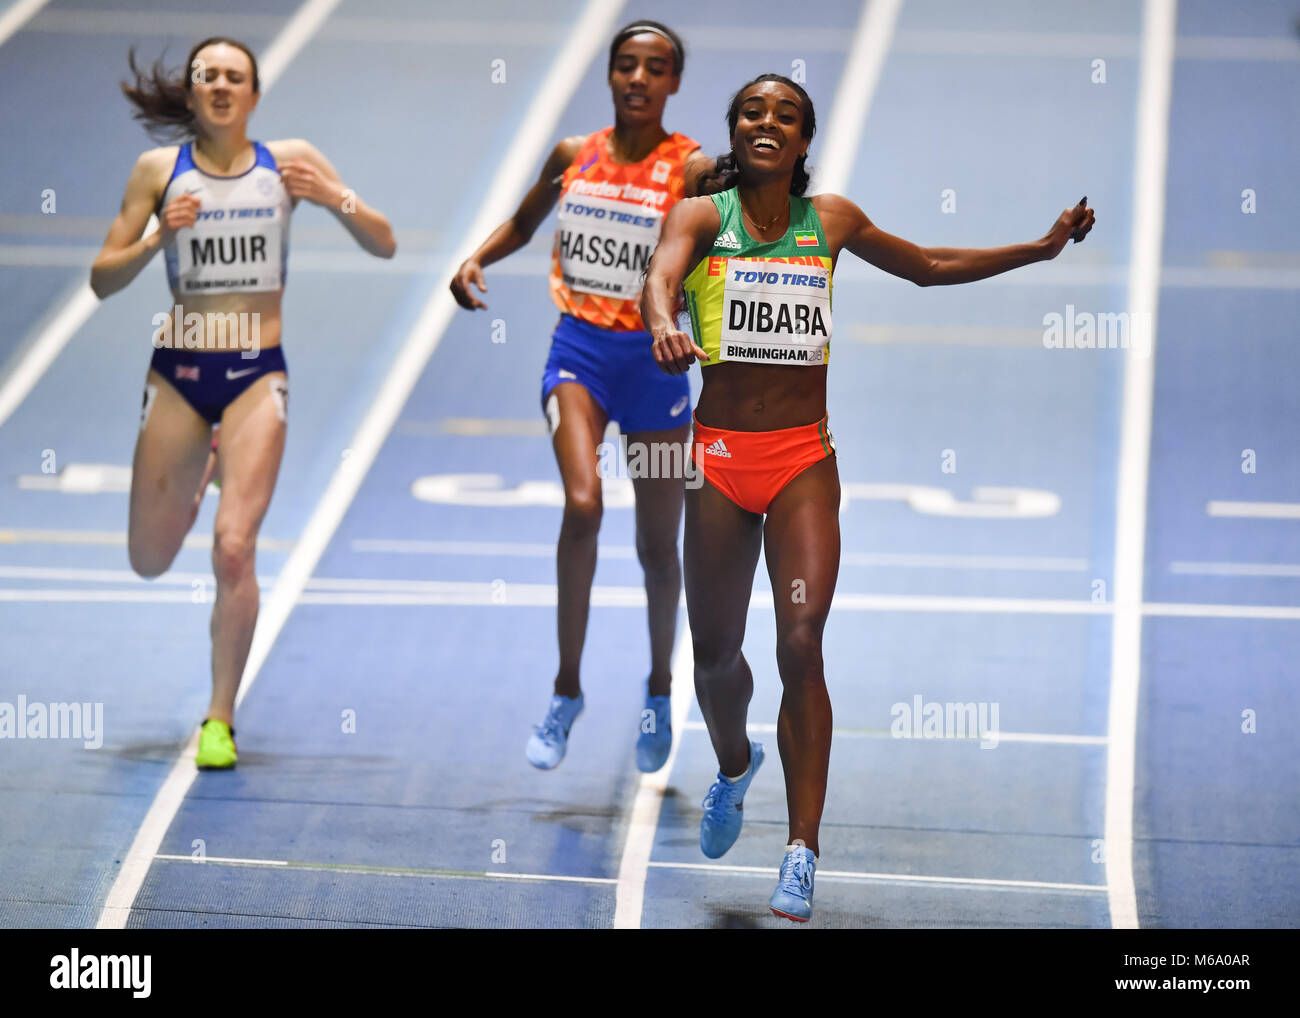 Birmingham, UK. 1st March, 2018. Genzebe Dibaba (ETH) celebrates winning of the Women's 3000m Final during IAAF - Stock Image